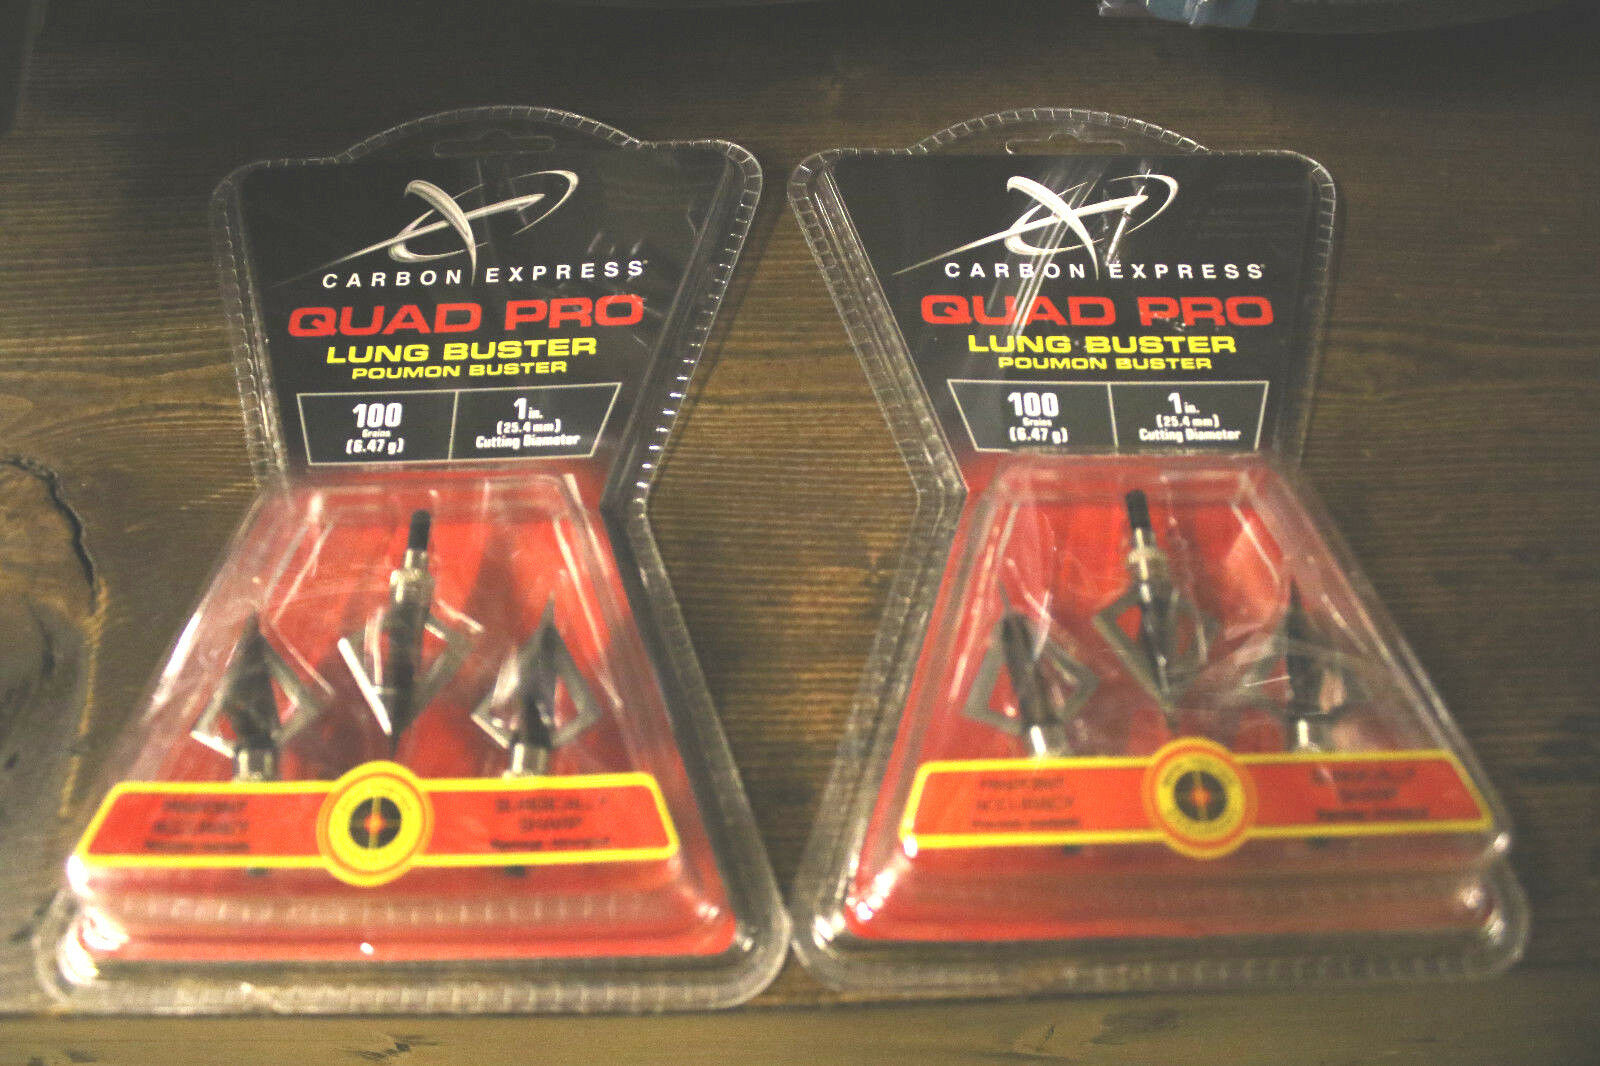 New CARBON EXPRESS Quad Pro Lung Buster 3 Pack Broadheads 10